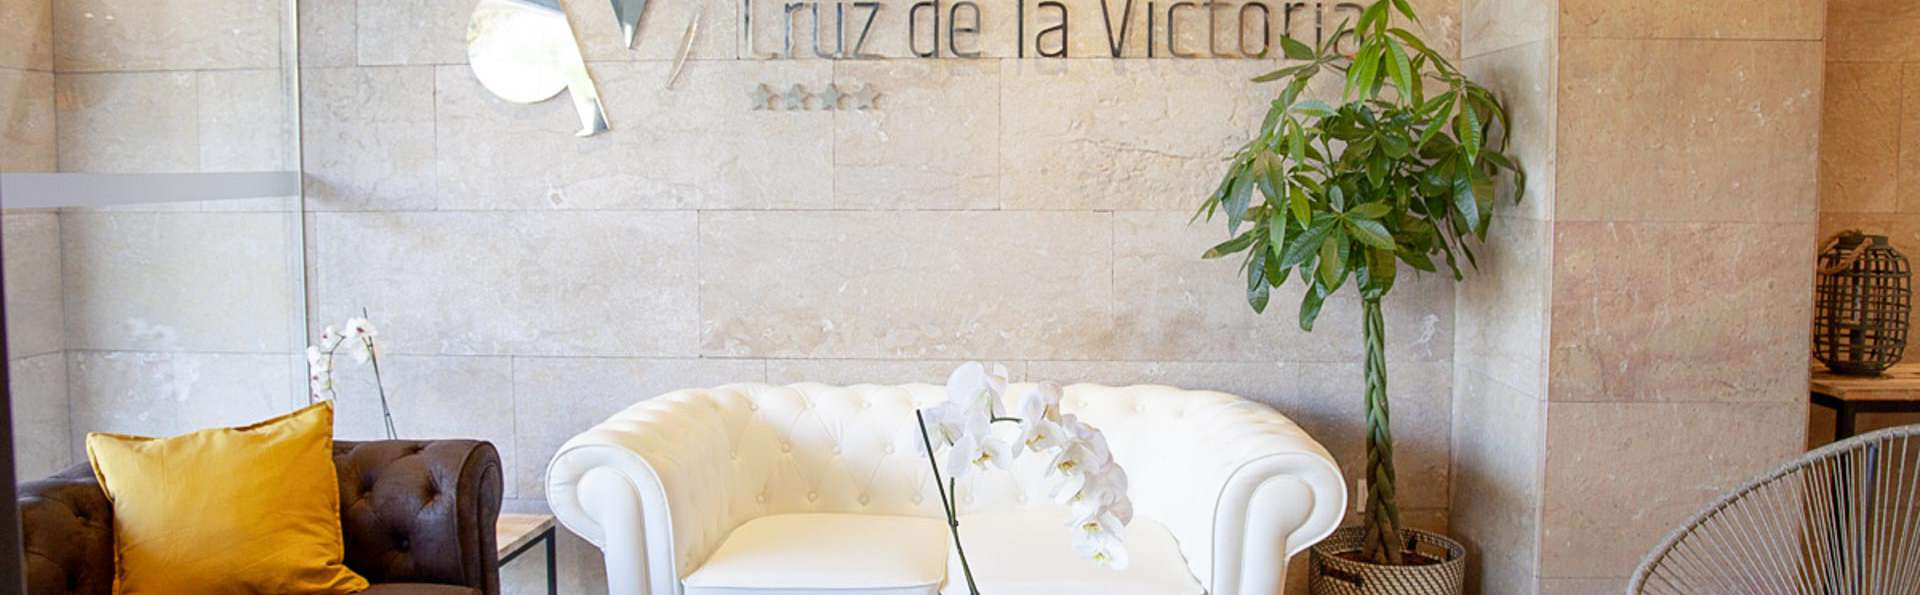 Hotel Cruz de la Victoria - EDIT_HALL_02.jpg